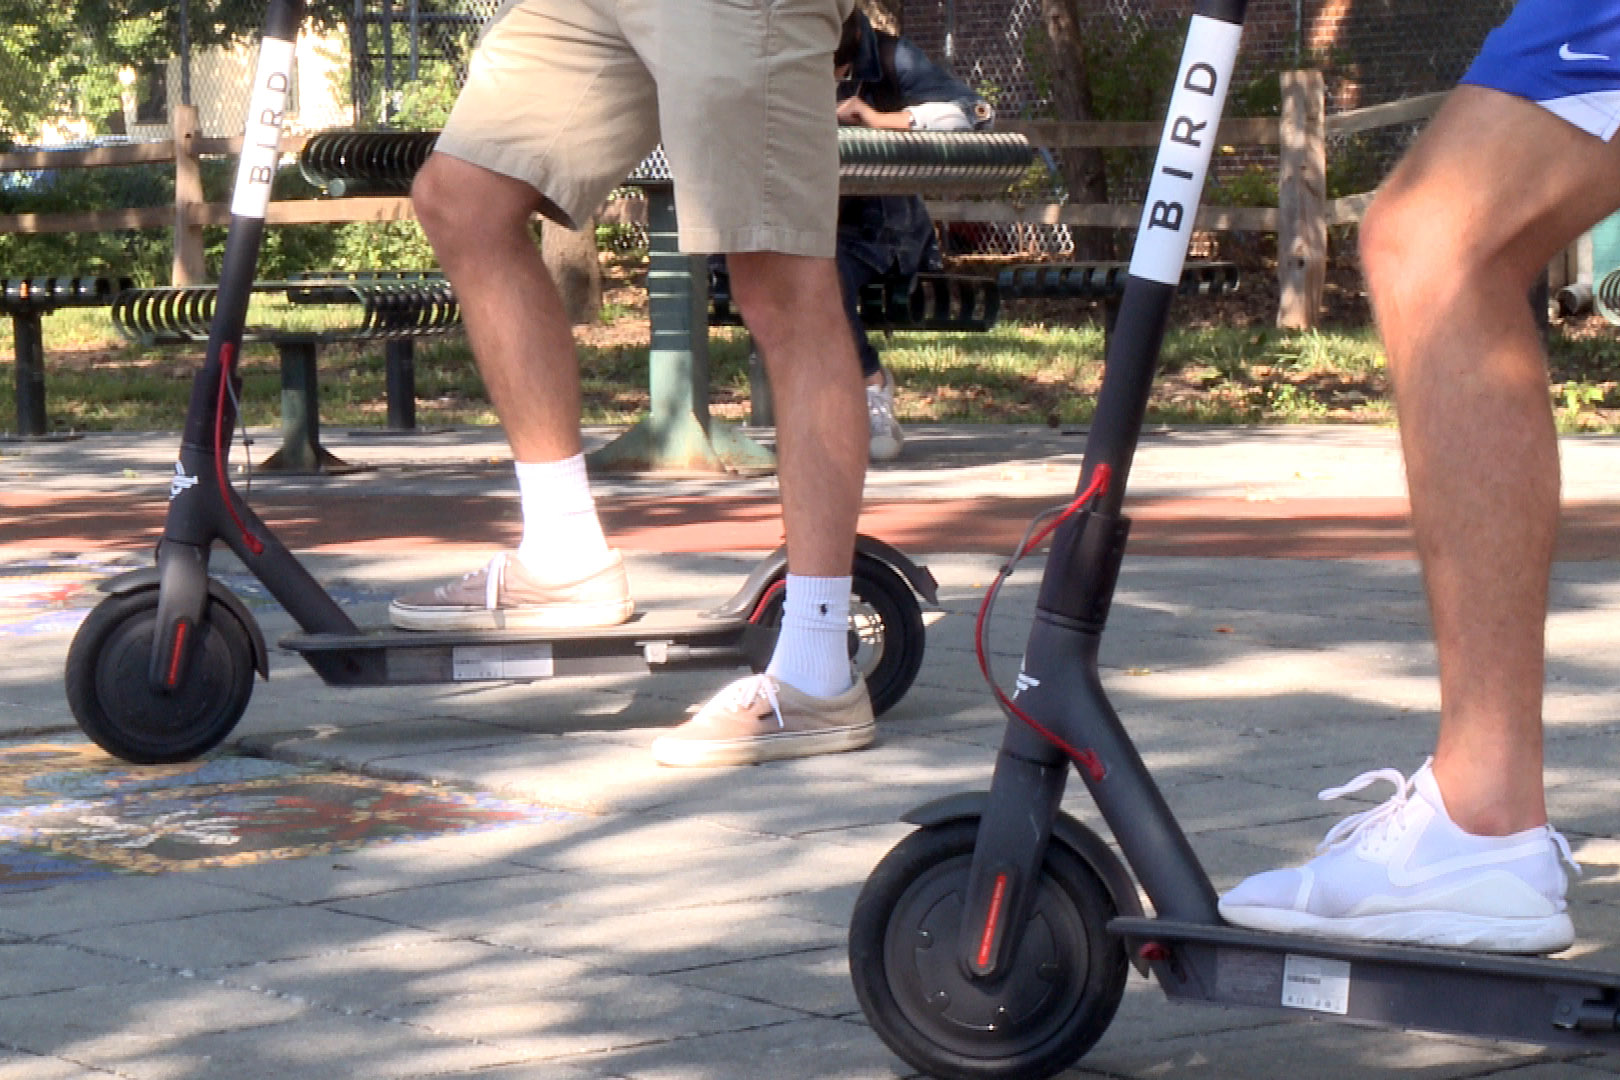 bird-scooter-pic.jpg